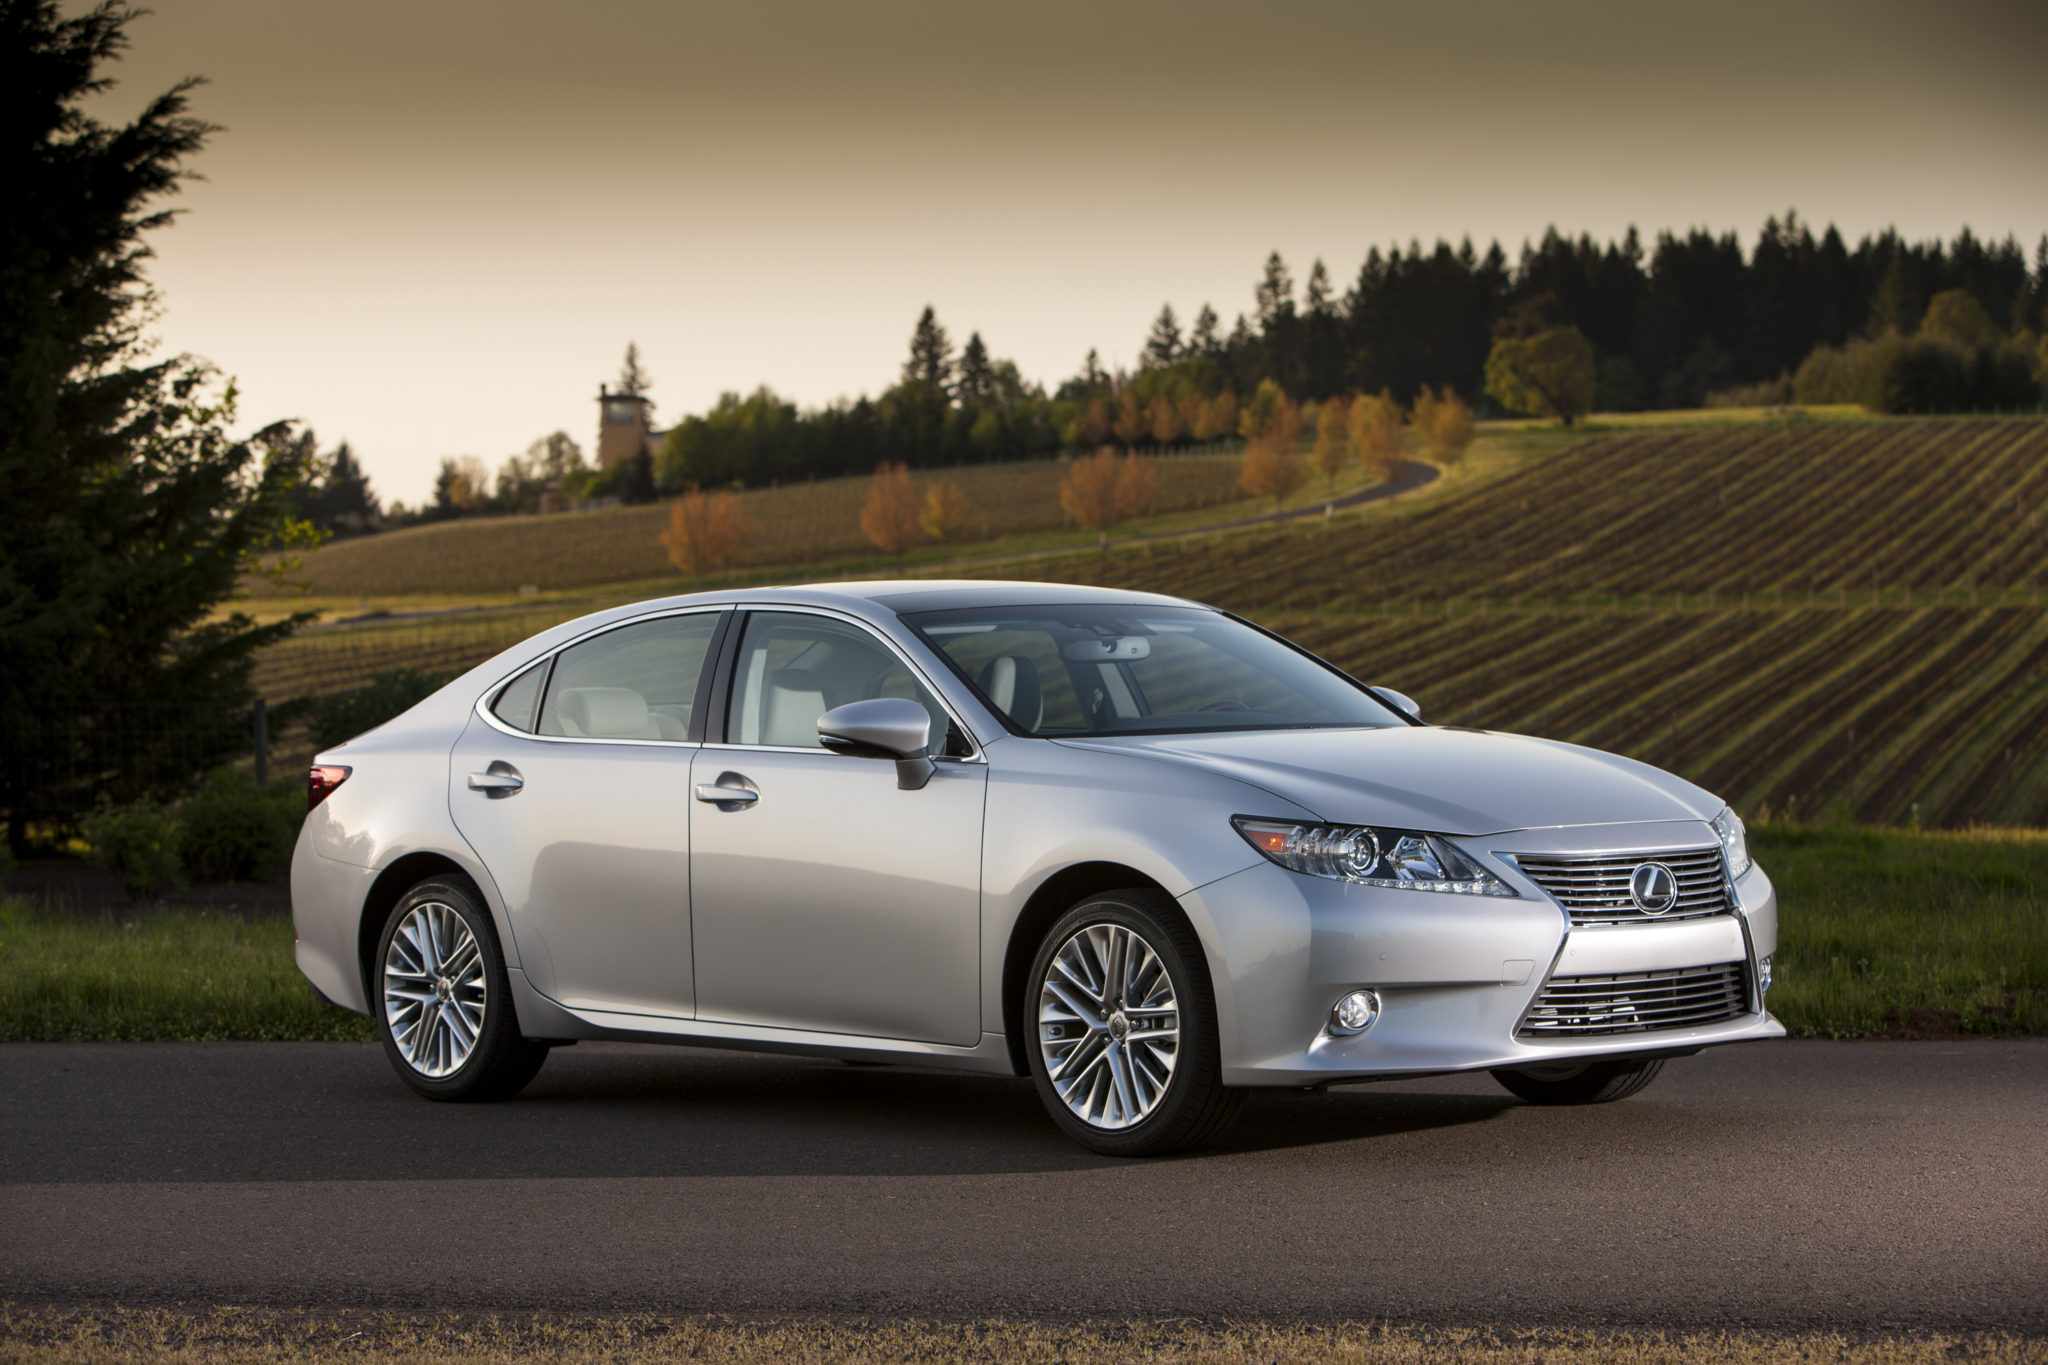 That s So Gay 2015 Lexus ES 350 Is e The Gayest Grandest